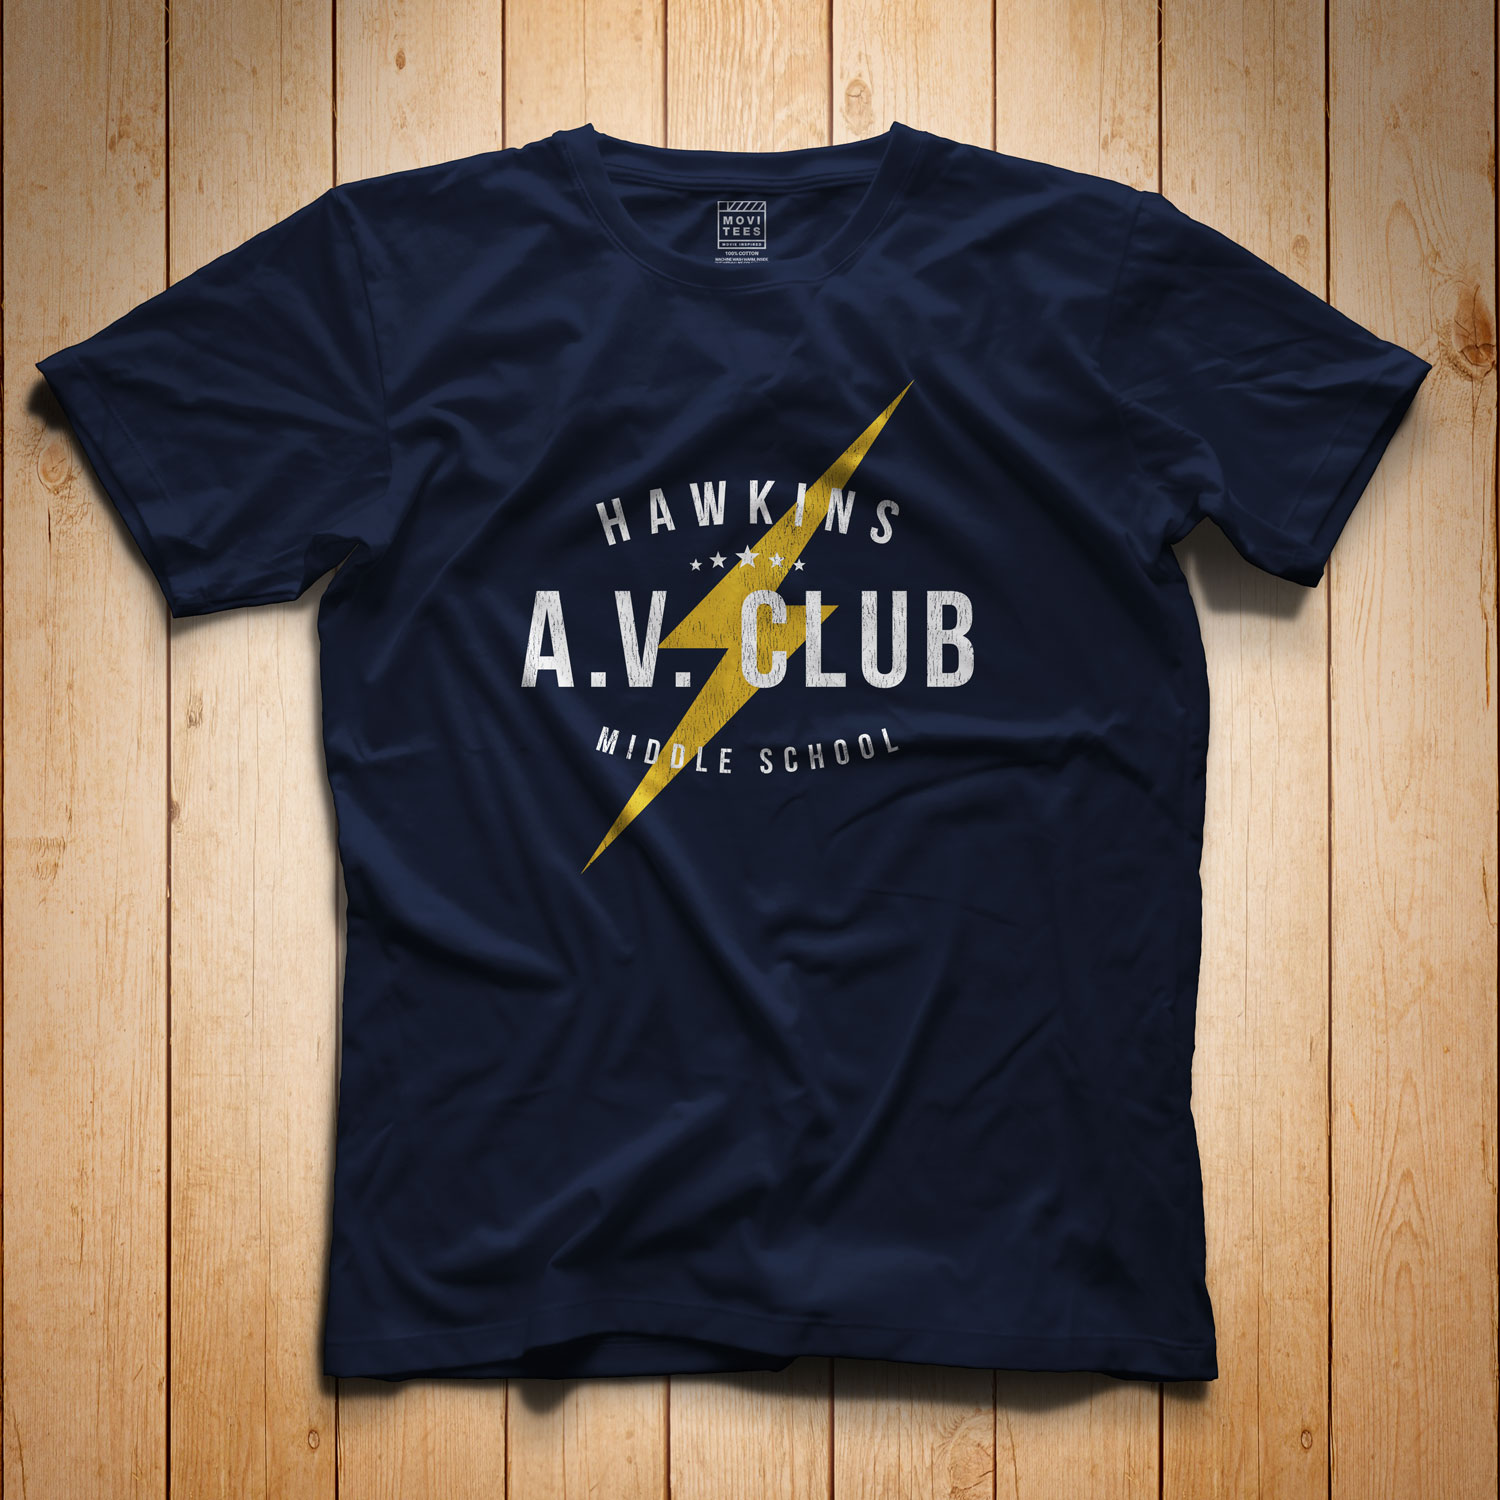 Hawkins-AV-Club-Stranger-Things-Inspired-TShirt-by-MoviTees_N.jpg